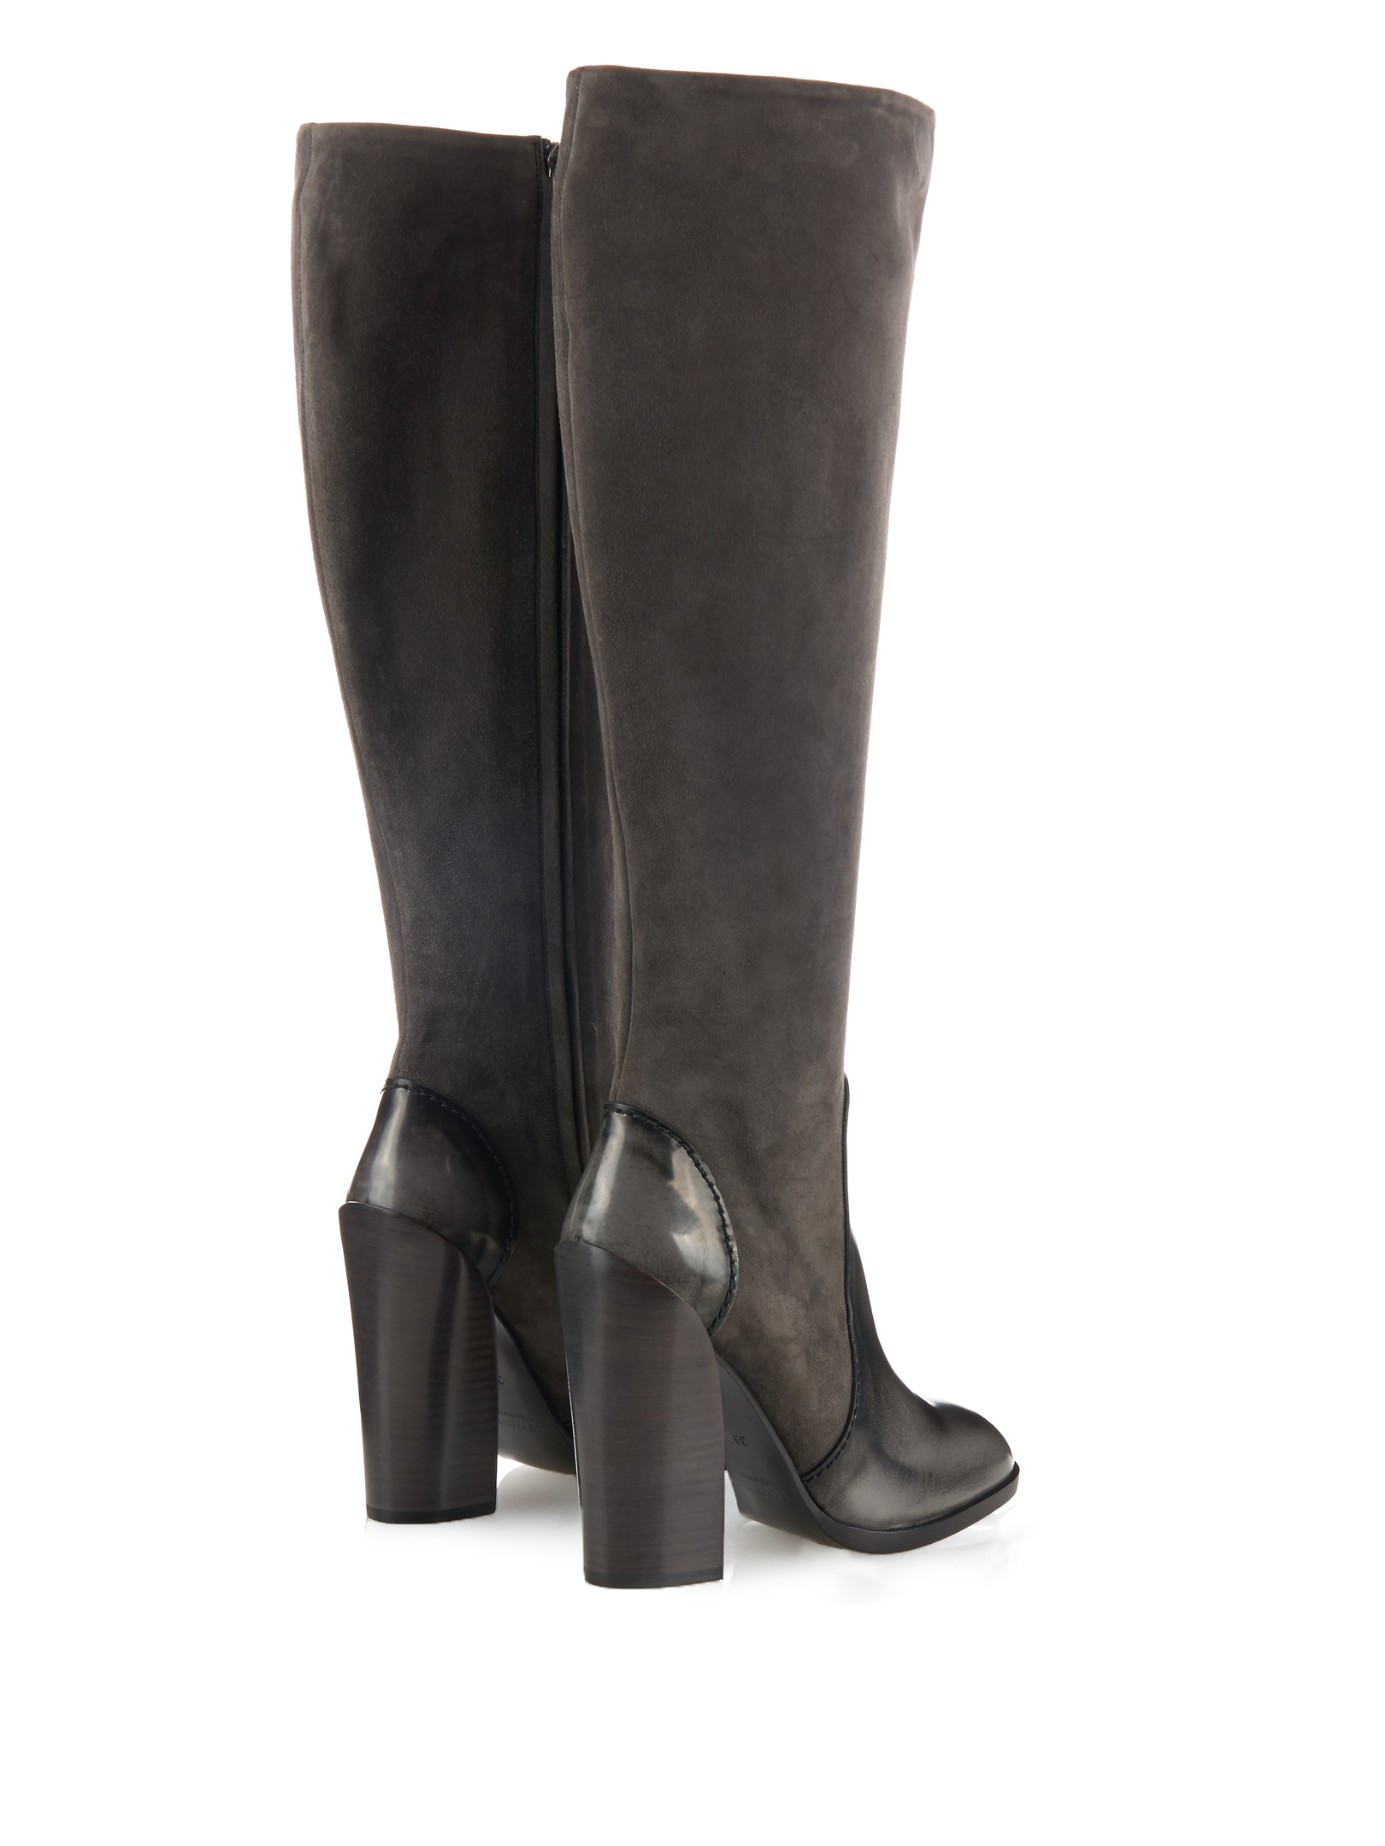 limited edition cheap price sale for nice Jil Sander Leather Wedge Knee-High Boots free shipping in China uwRJV